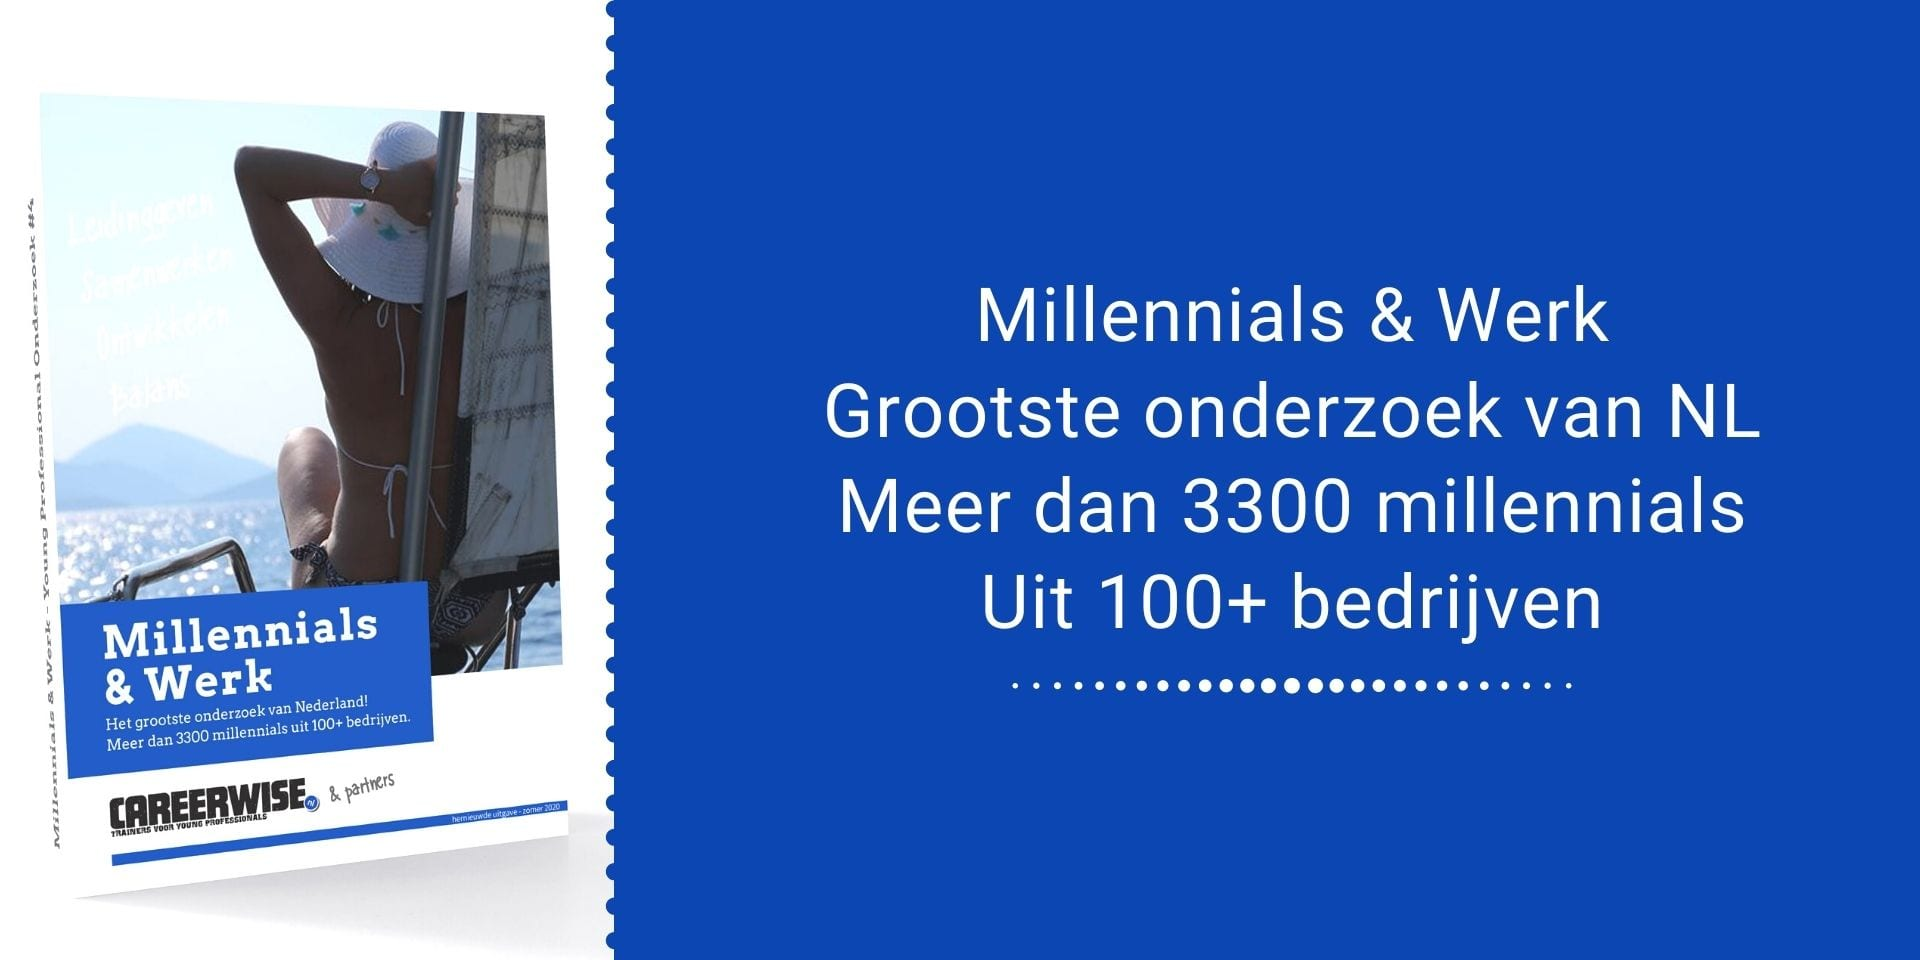 Millennials & Werk - Careerwise whitepaper op basis van Young Professional Onderzoek - download gratis - Download hier - Banner